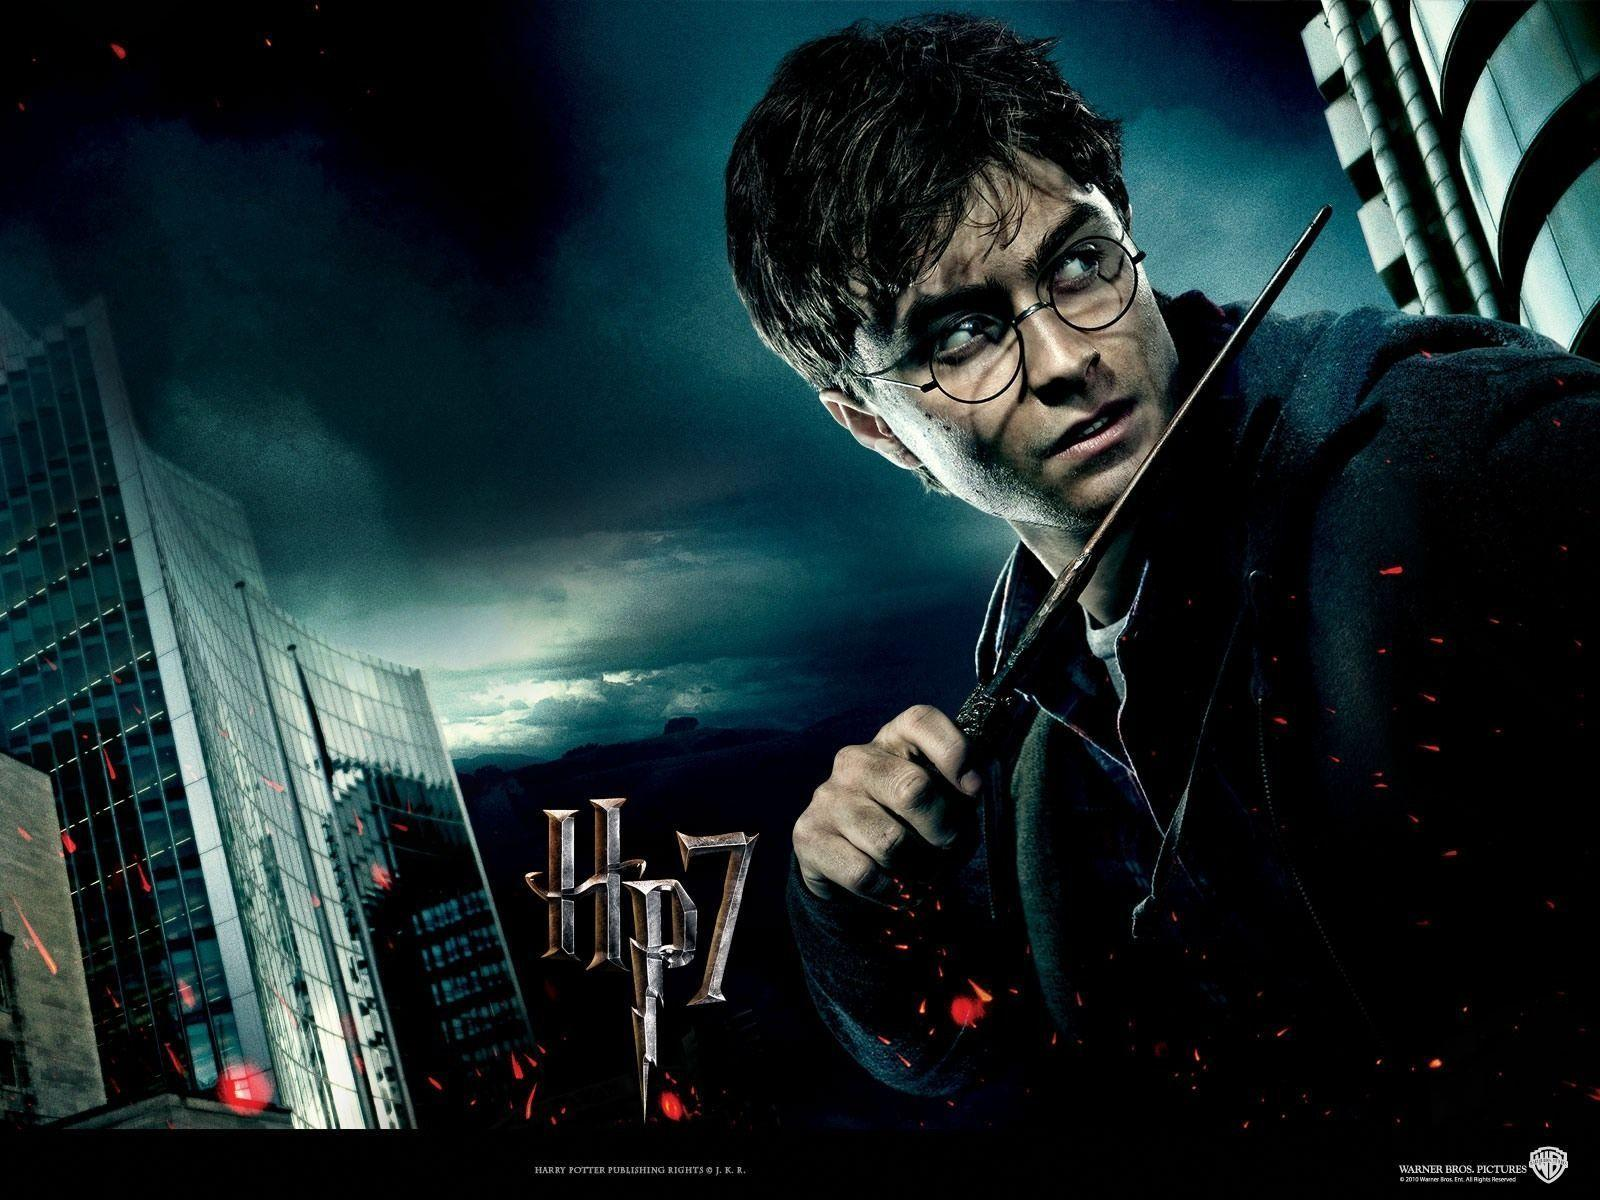 Top Wallpaper Harry Potter Full Hd - jbiWiO5  Graphic_486570.jpg